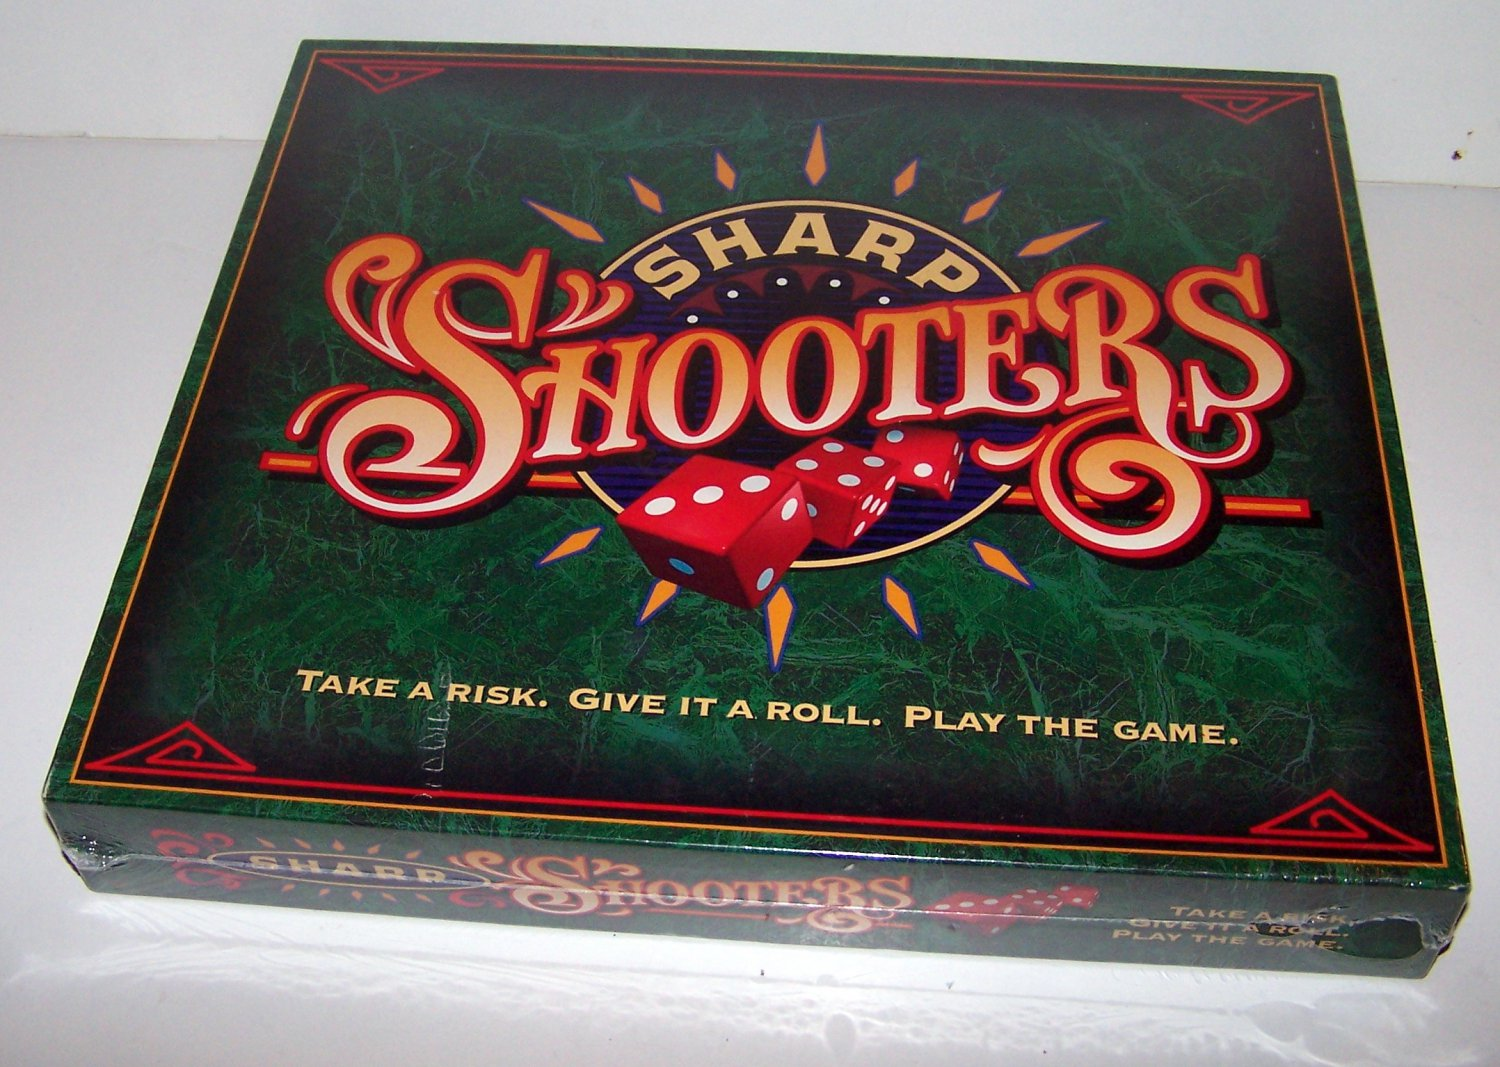 Sharp Shooters - Take a Risk. Give It a Roll. Play the Game Milton Bradley